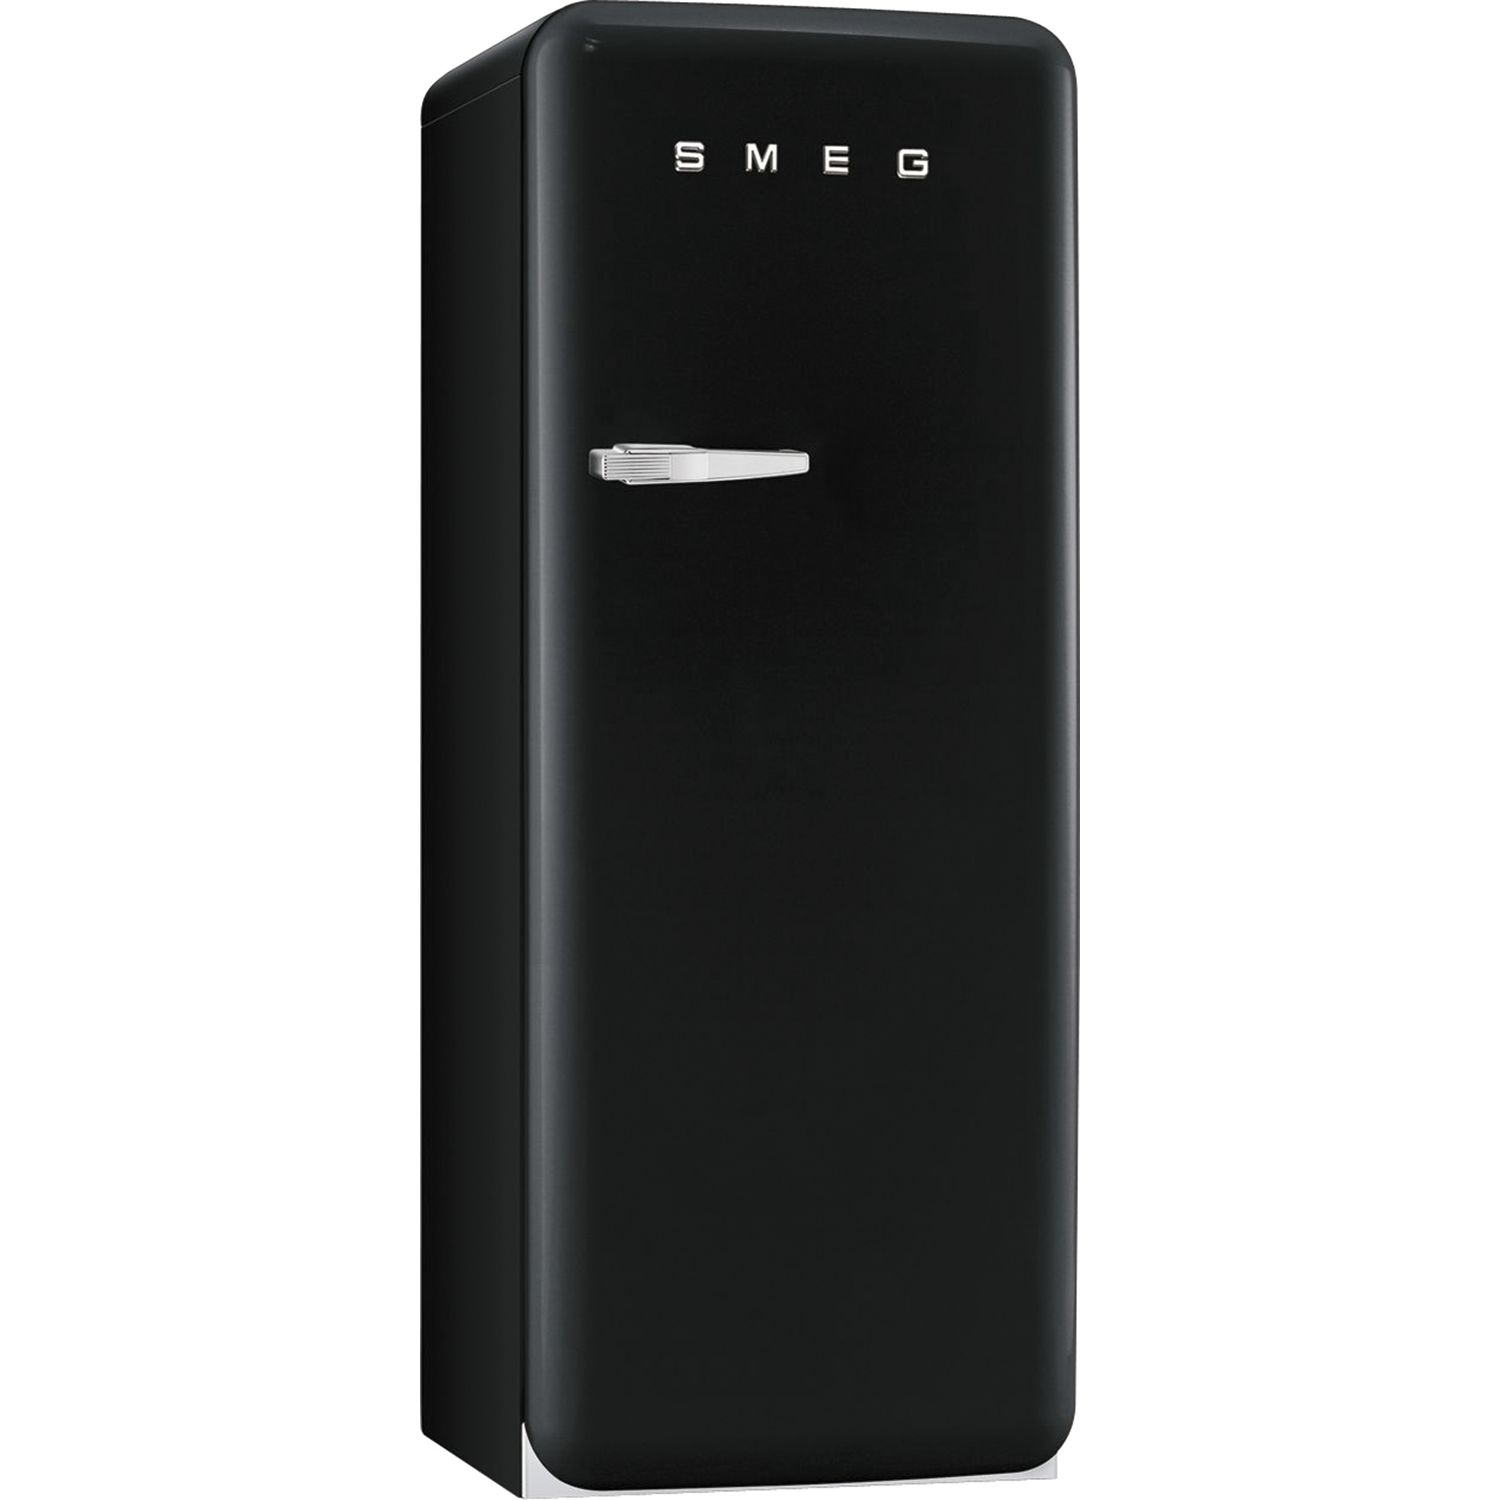 smeg stand gefrierschrank cvb20 linksanschlag 60 cm breit. Black Bedroom Furniture Sets. Home Design Ideas